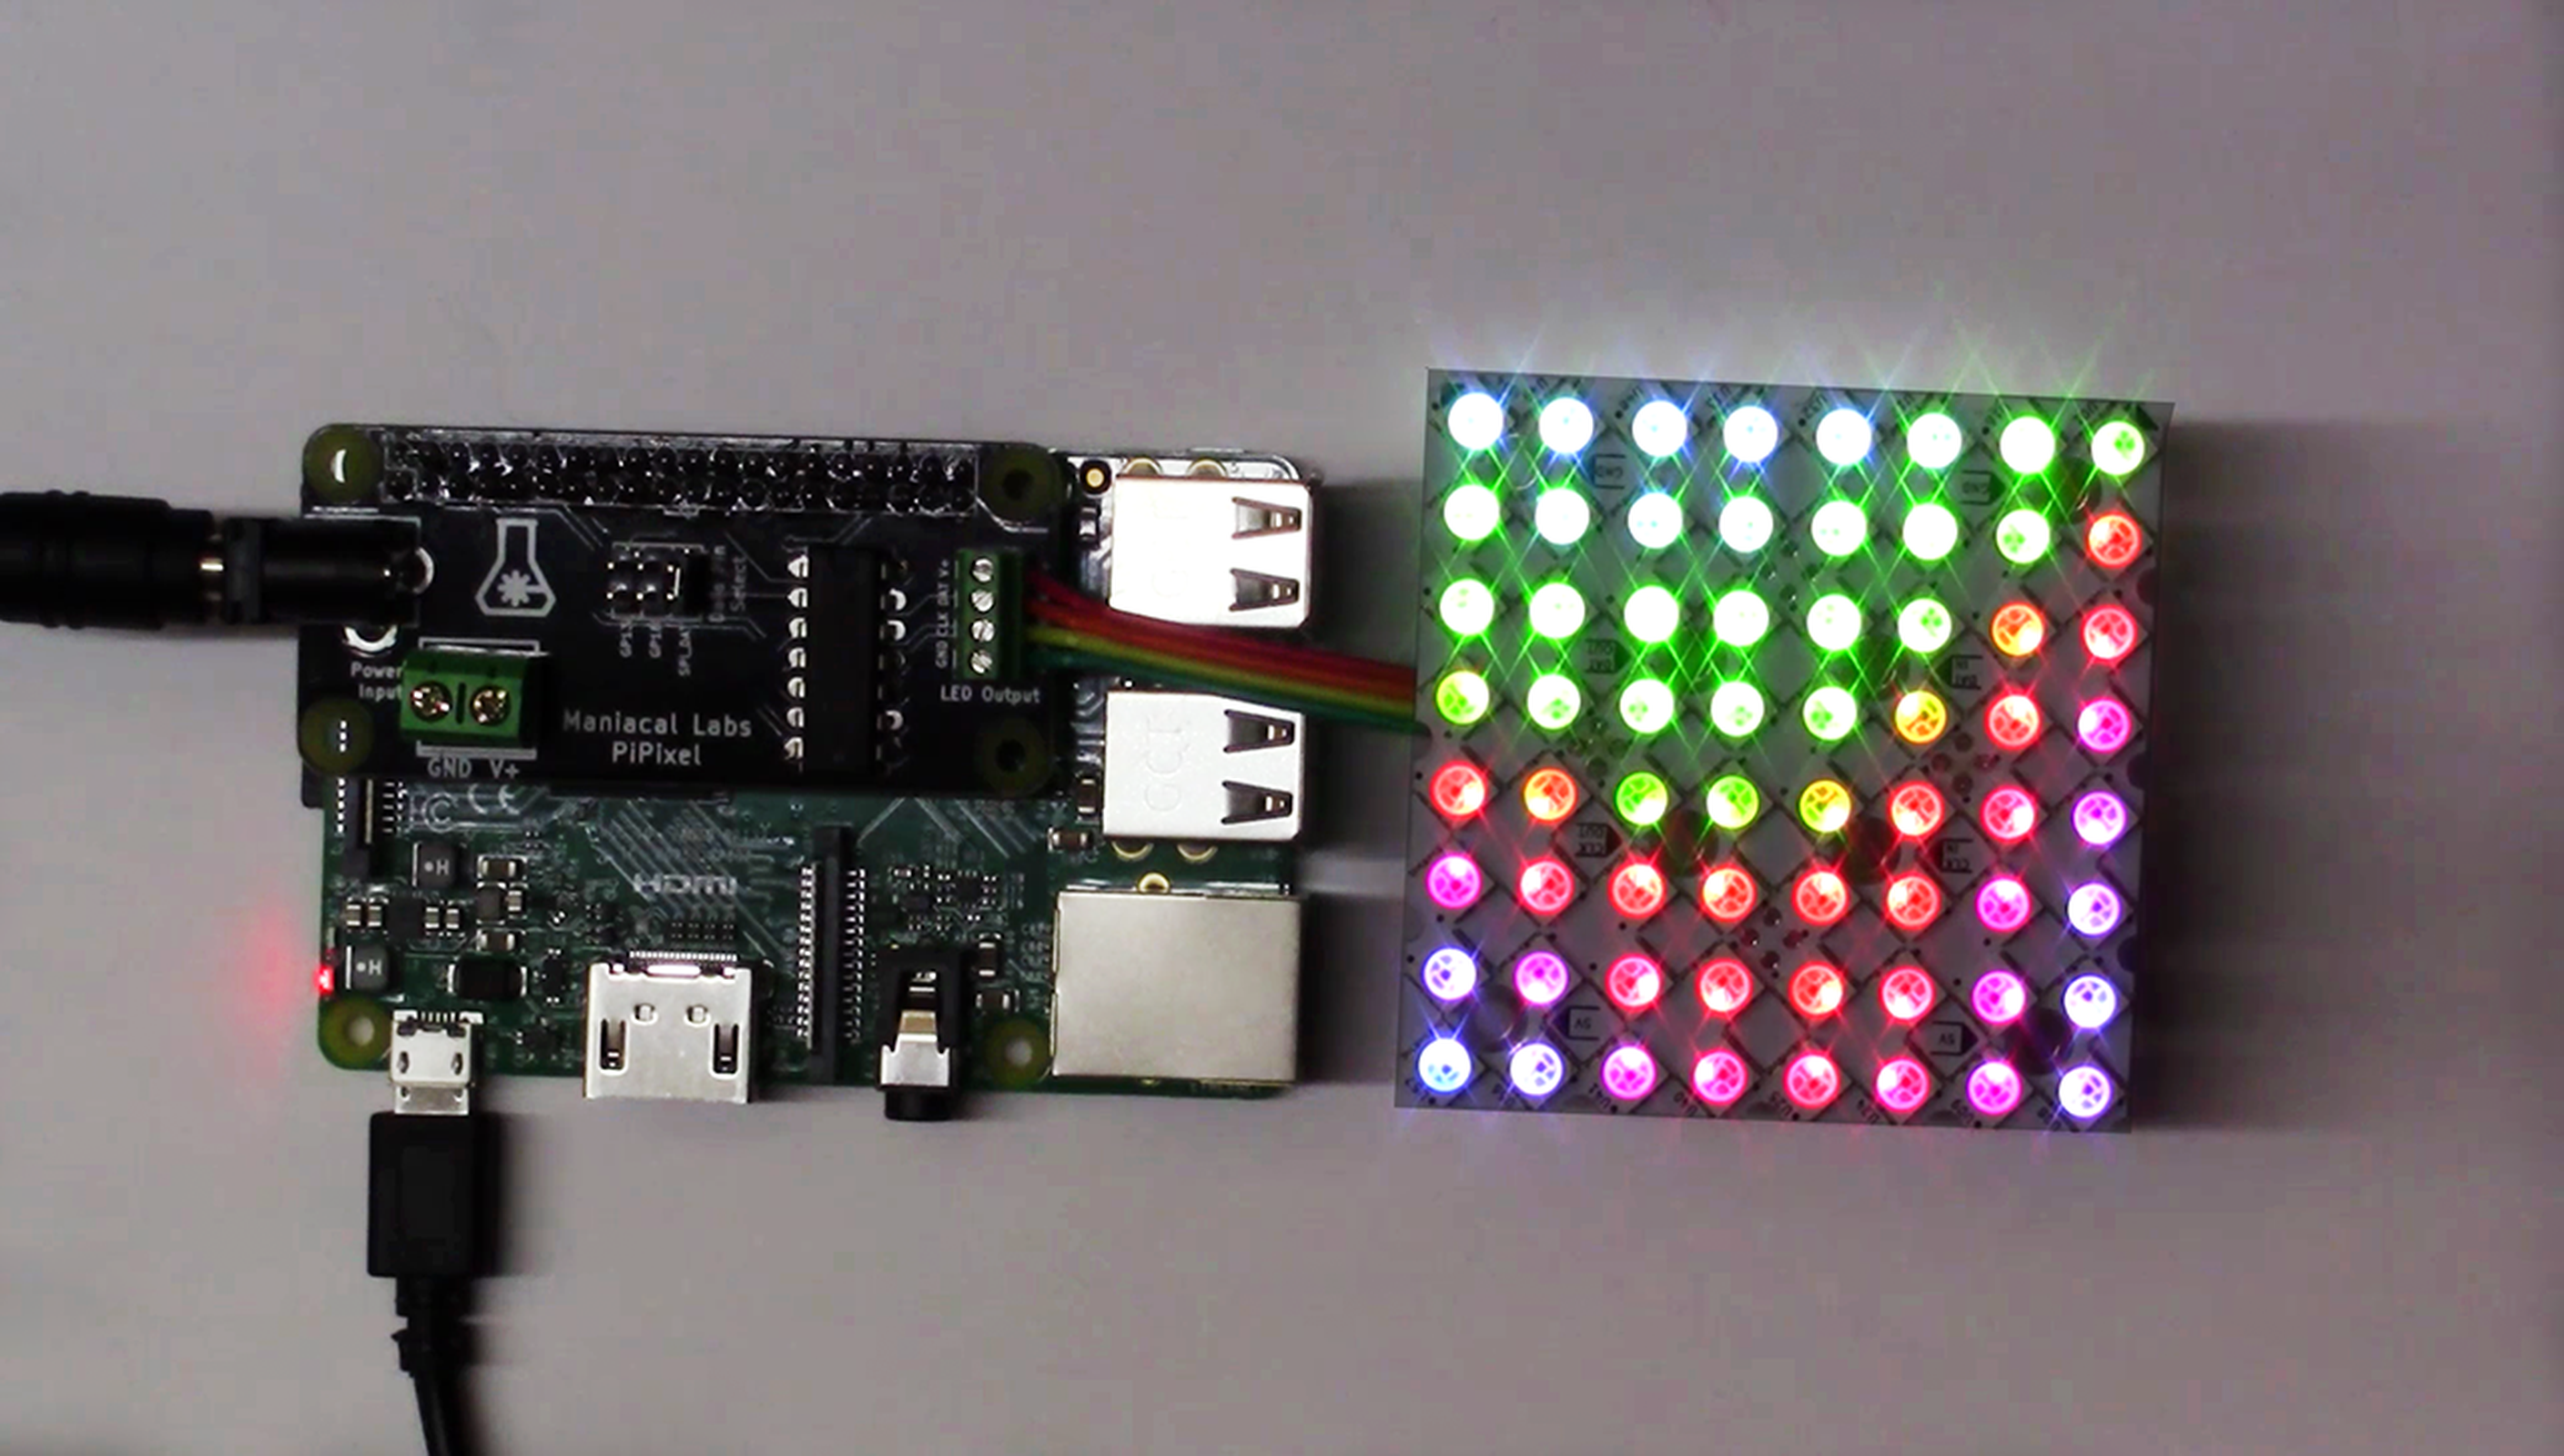 PiPixel - Raspberry Pi LED Strip HAT from Maniacal Labs on